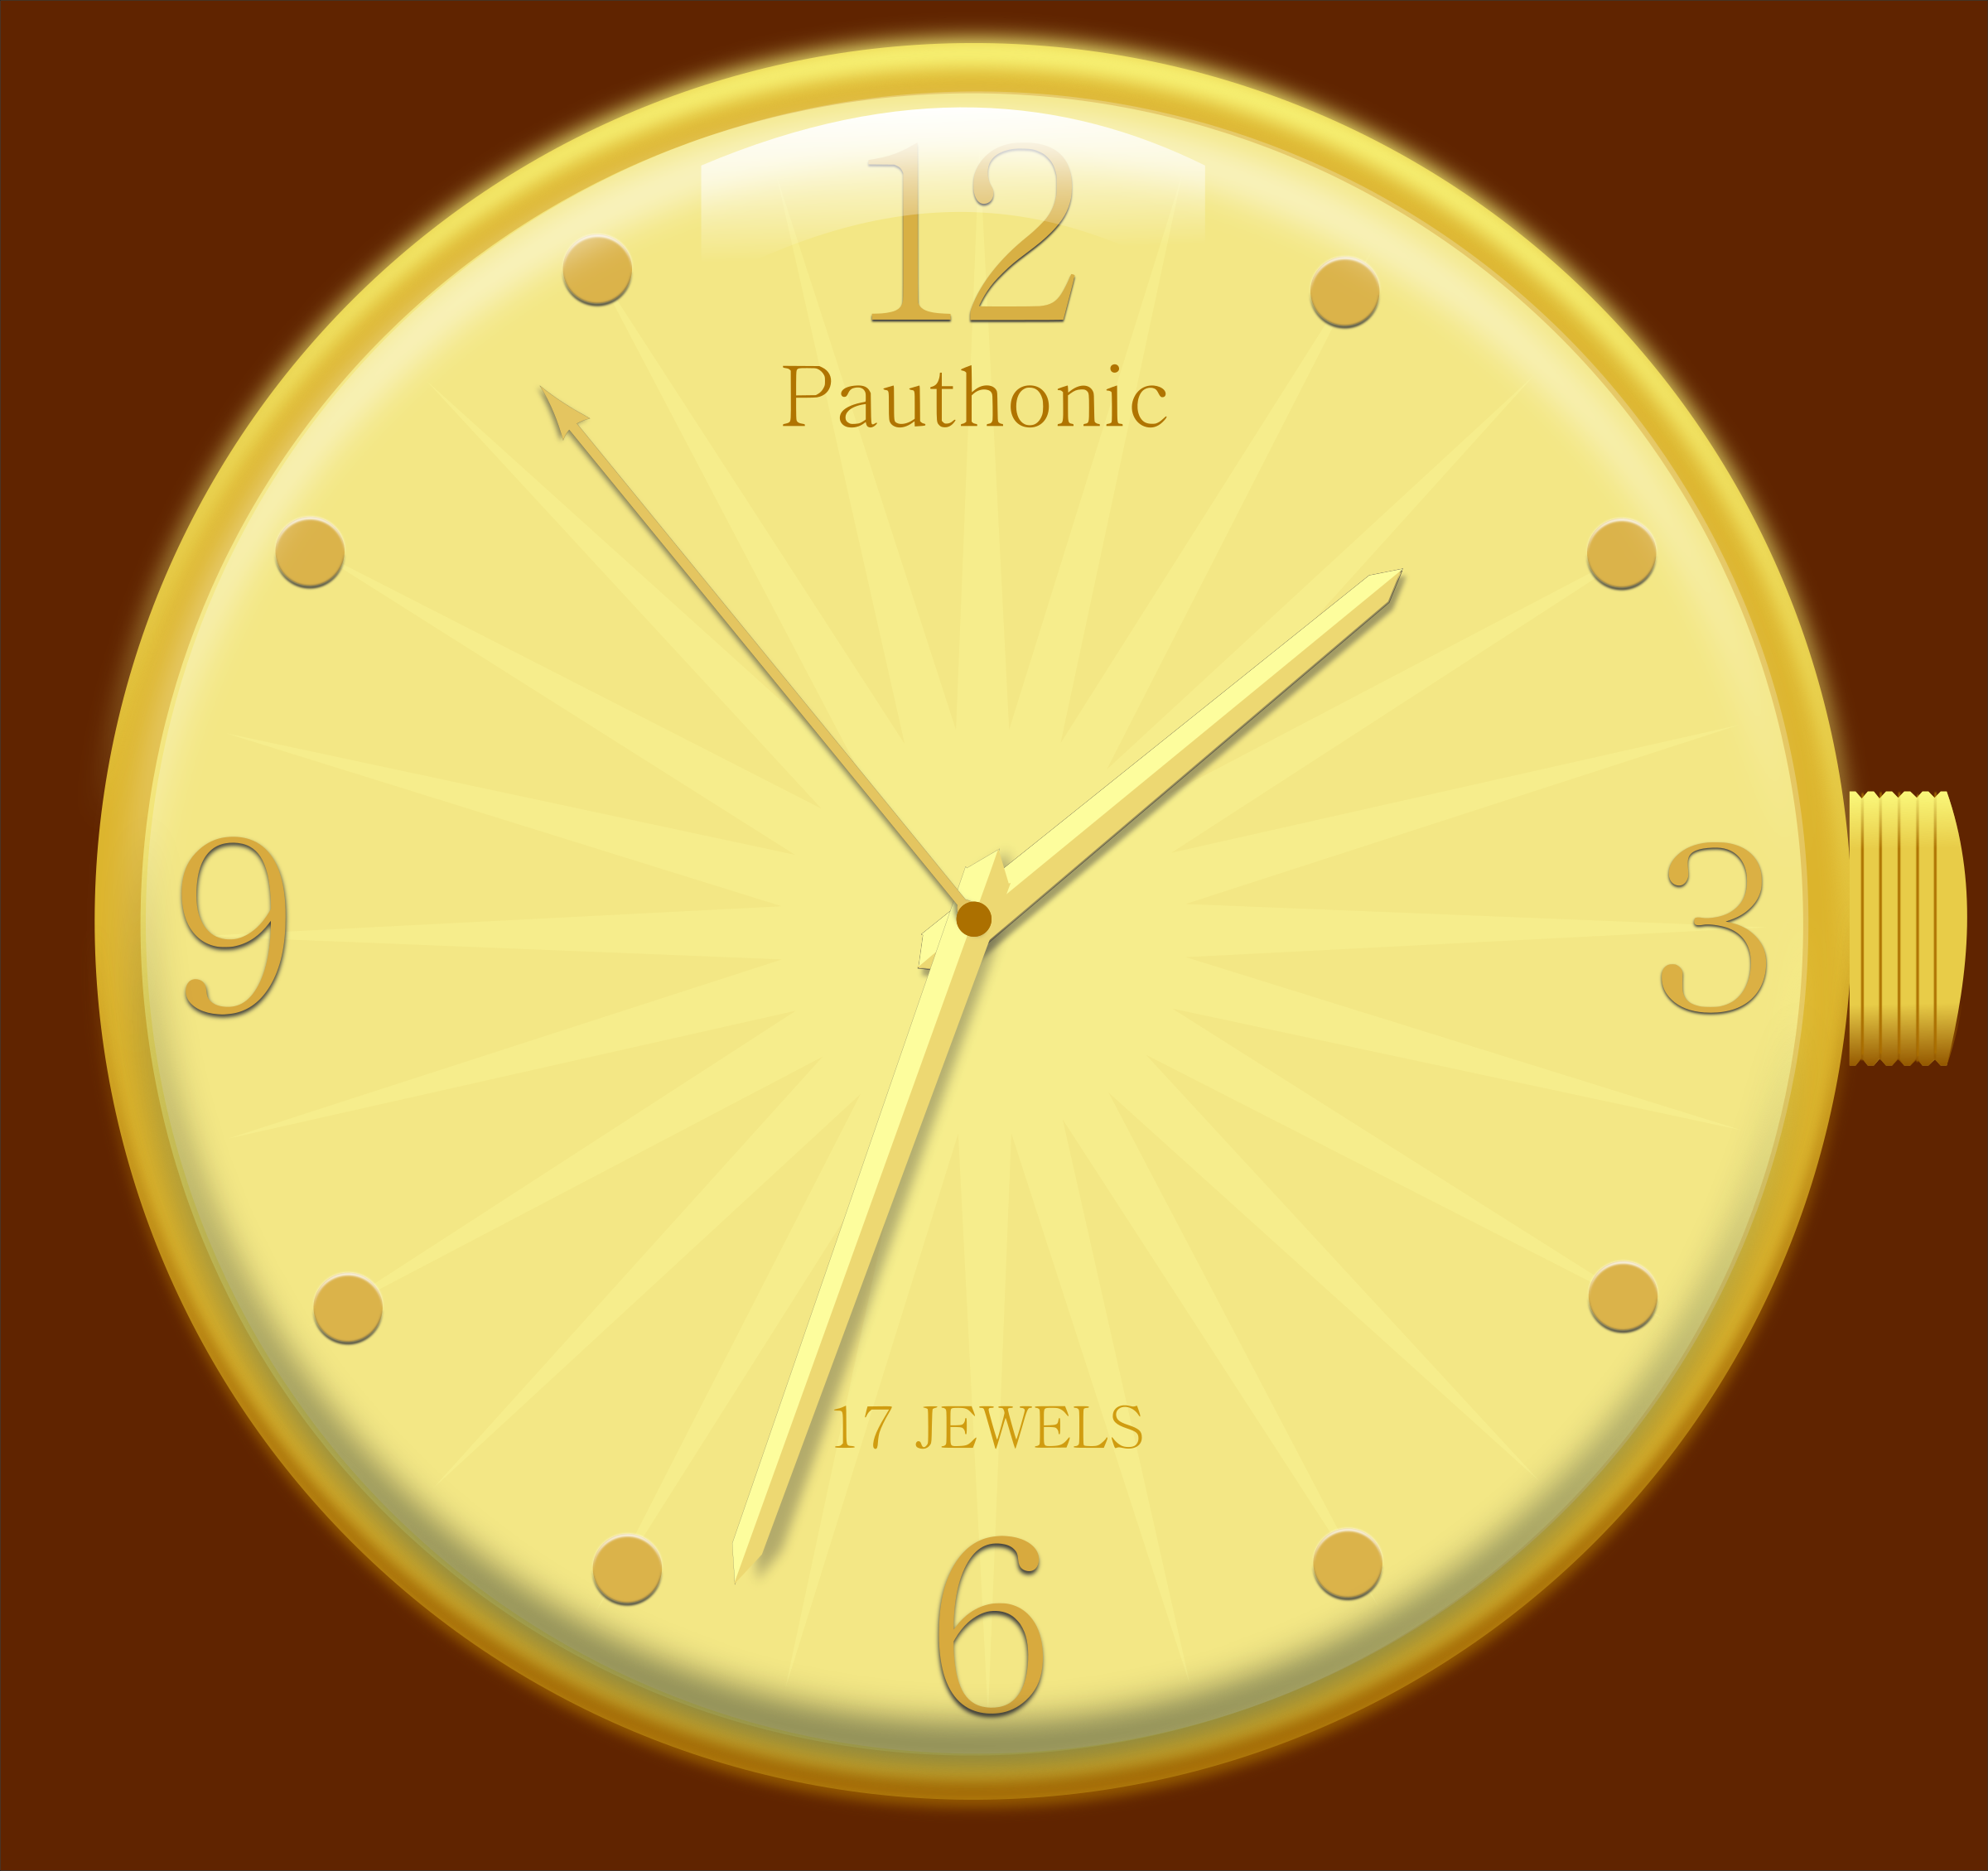 Rmx golden watch by pauthonic